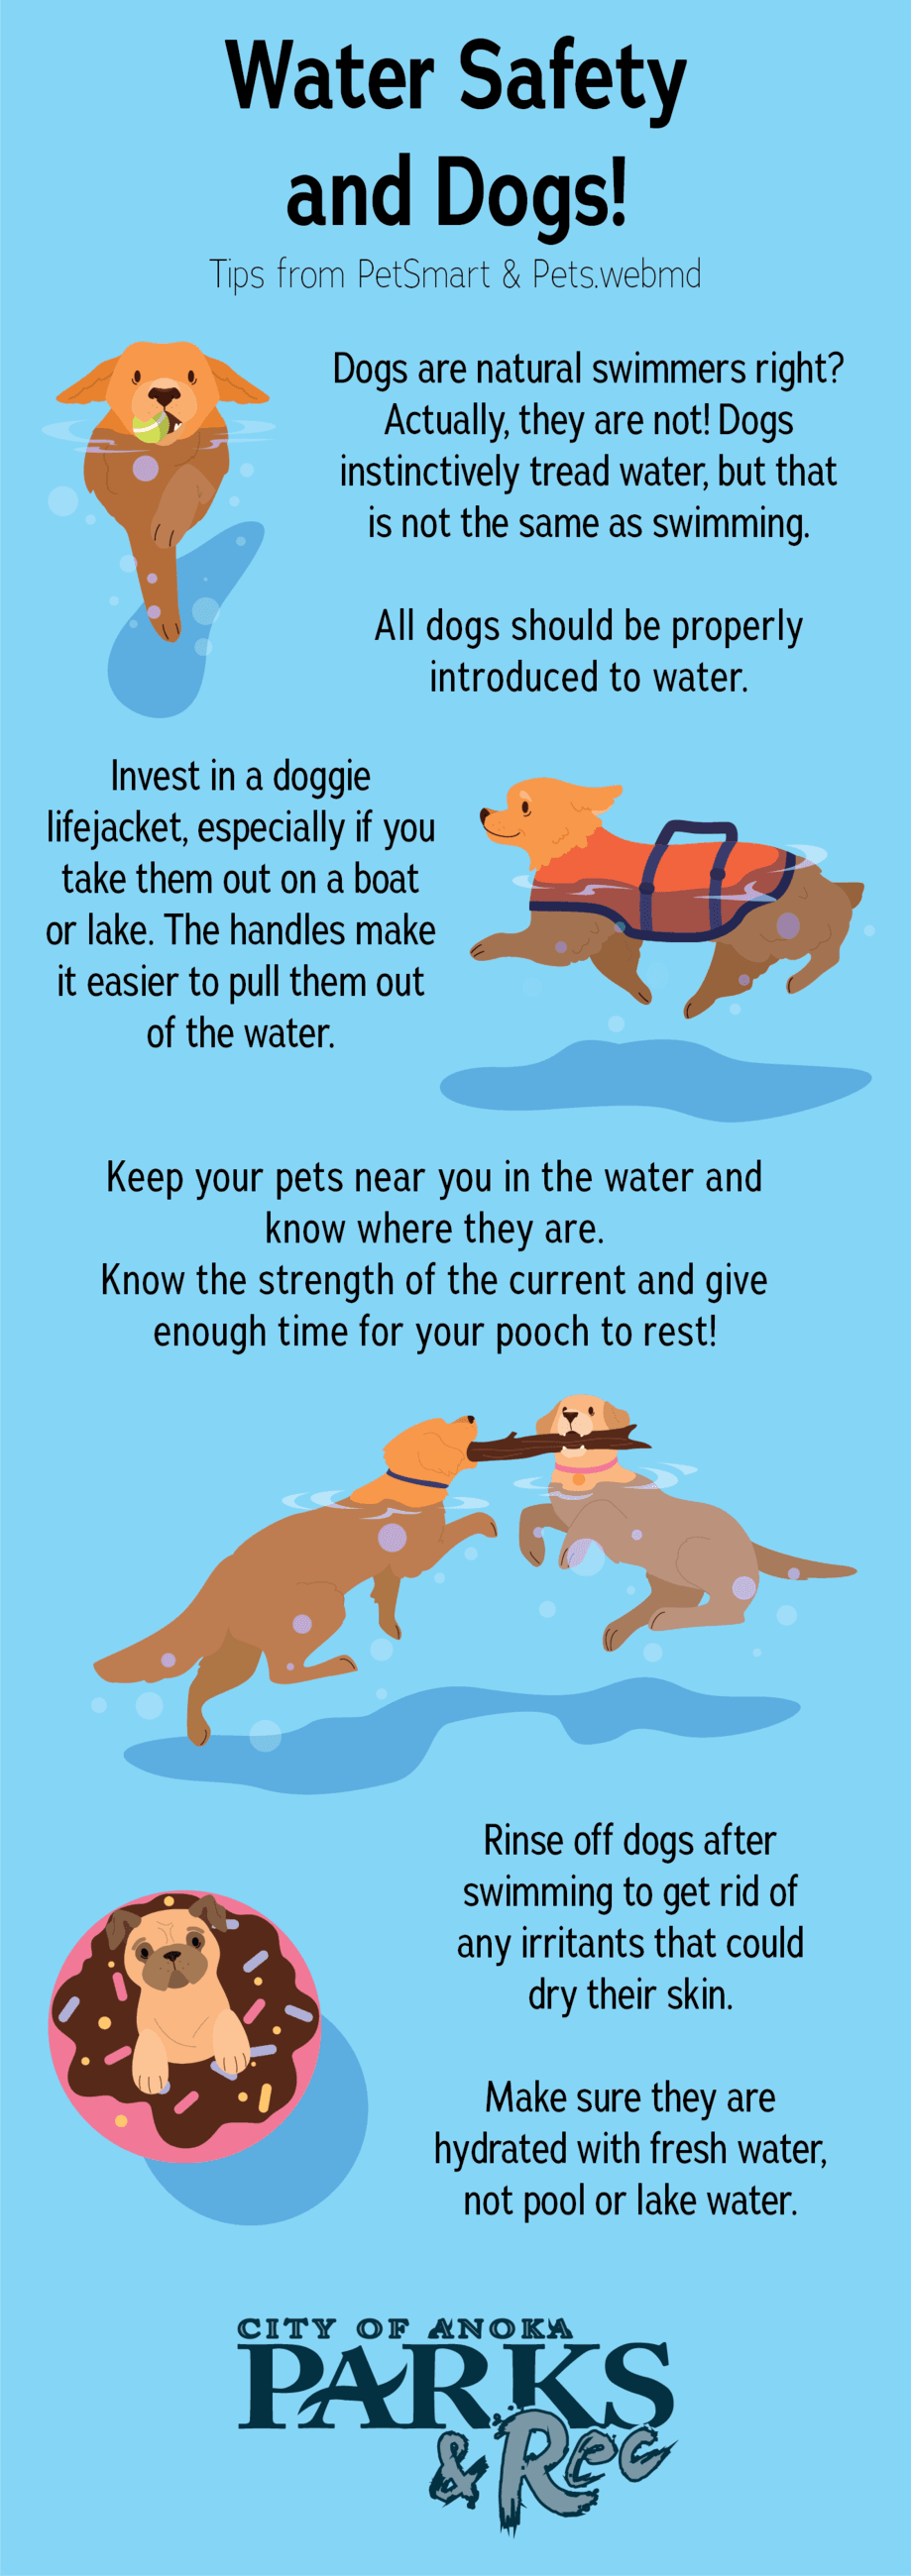 List of water safety tips for dogs from PetSmart and pets.webmd